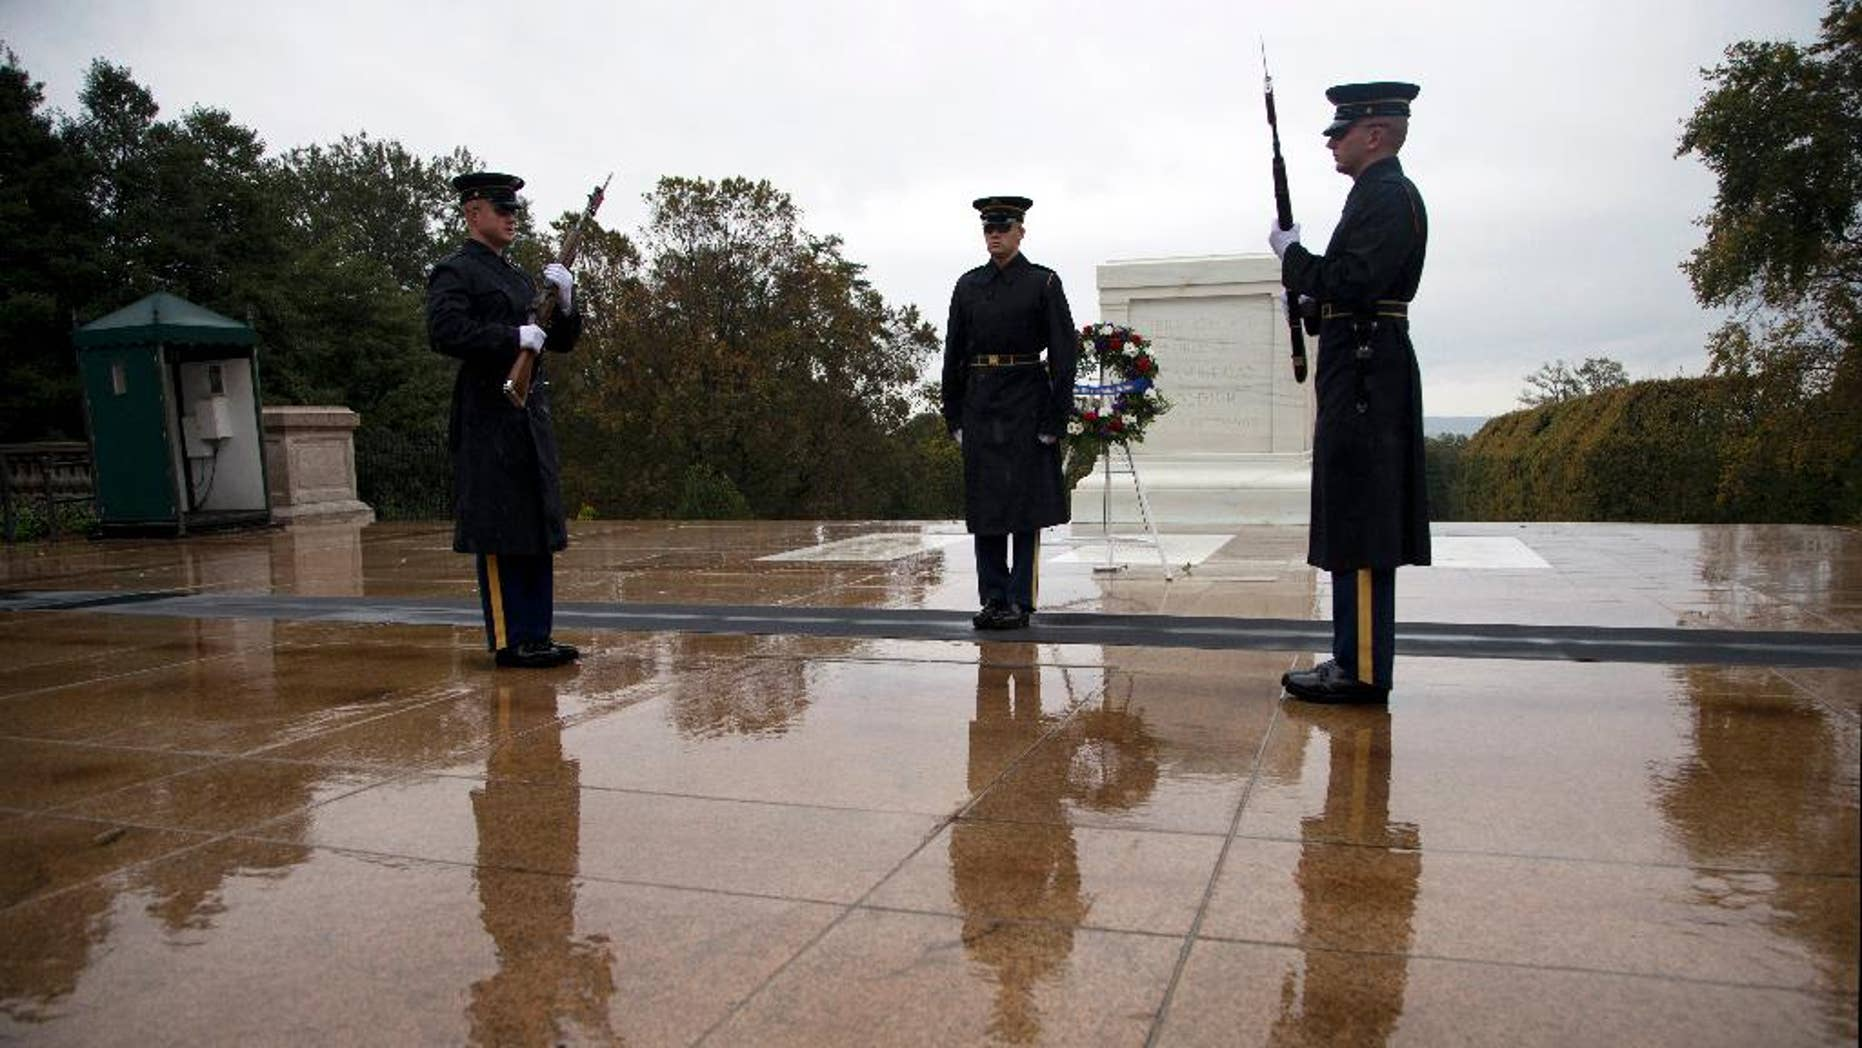 Tomb guards perform the Changing of the Guard at the Tomb of the Unknown Soldier in Arlington National Cemetery in Arlington, Va., Wednesday, Oct. 22, 2014. The military increased security Wednesday at the Tomb of the Unknowns at Arlington National Cemetery after fatal shootings at a Canadian war memorial and Parliament, even though the FBI and the Homeland Security Department said there was no specific threat against the U.S. (AP Photo/Manuel Balce Ceneta)